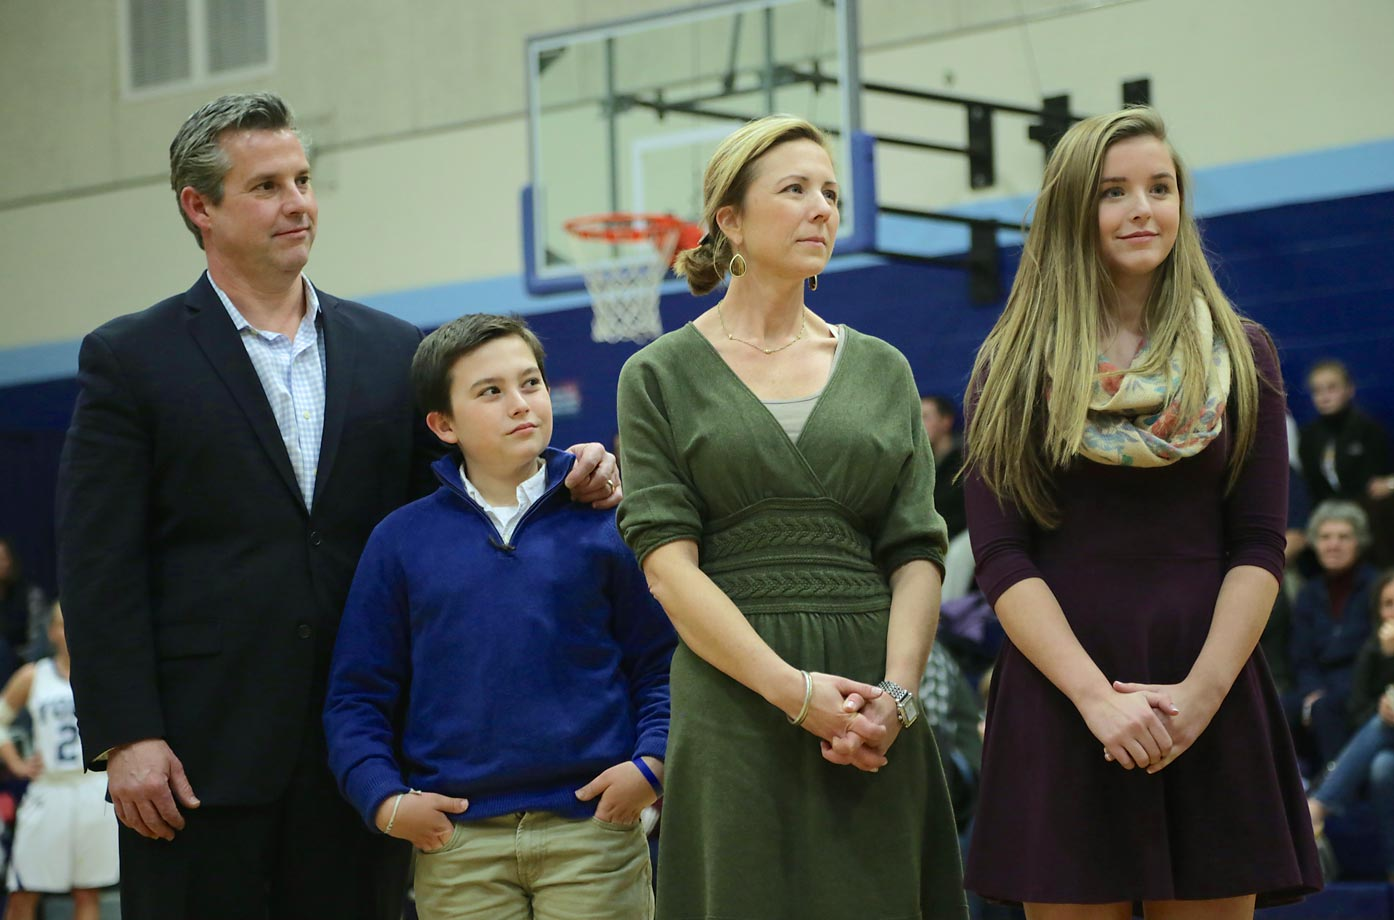 Kate's parents, Patrick and Martha, and brother Chase were on hand to watch her be honored in front of her school and community